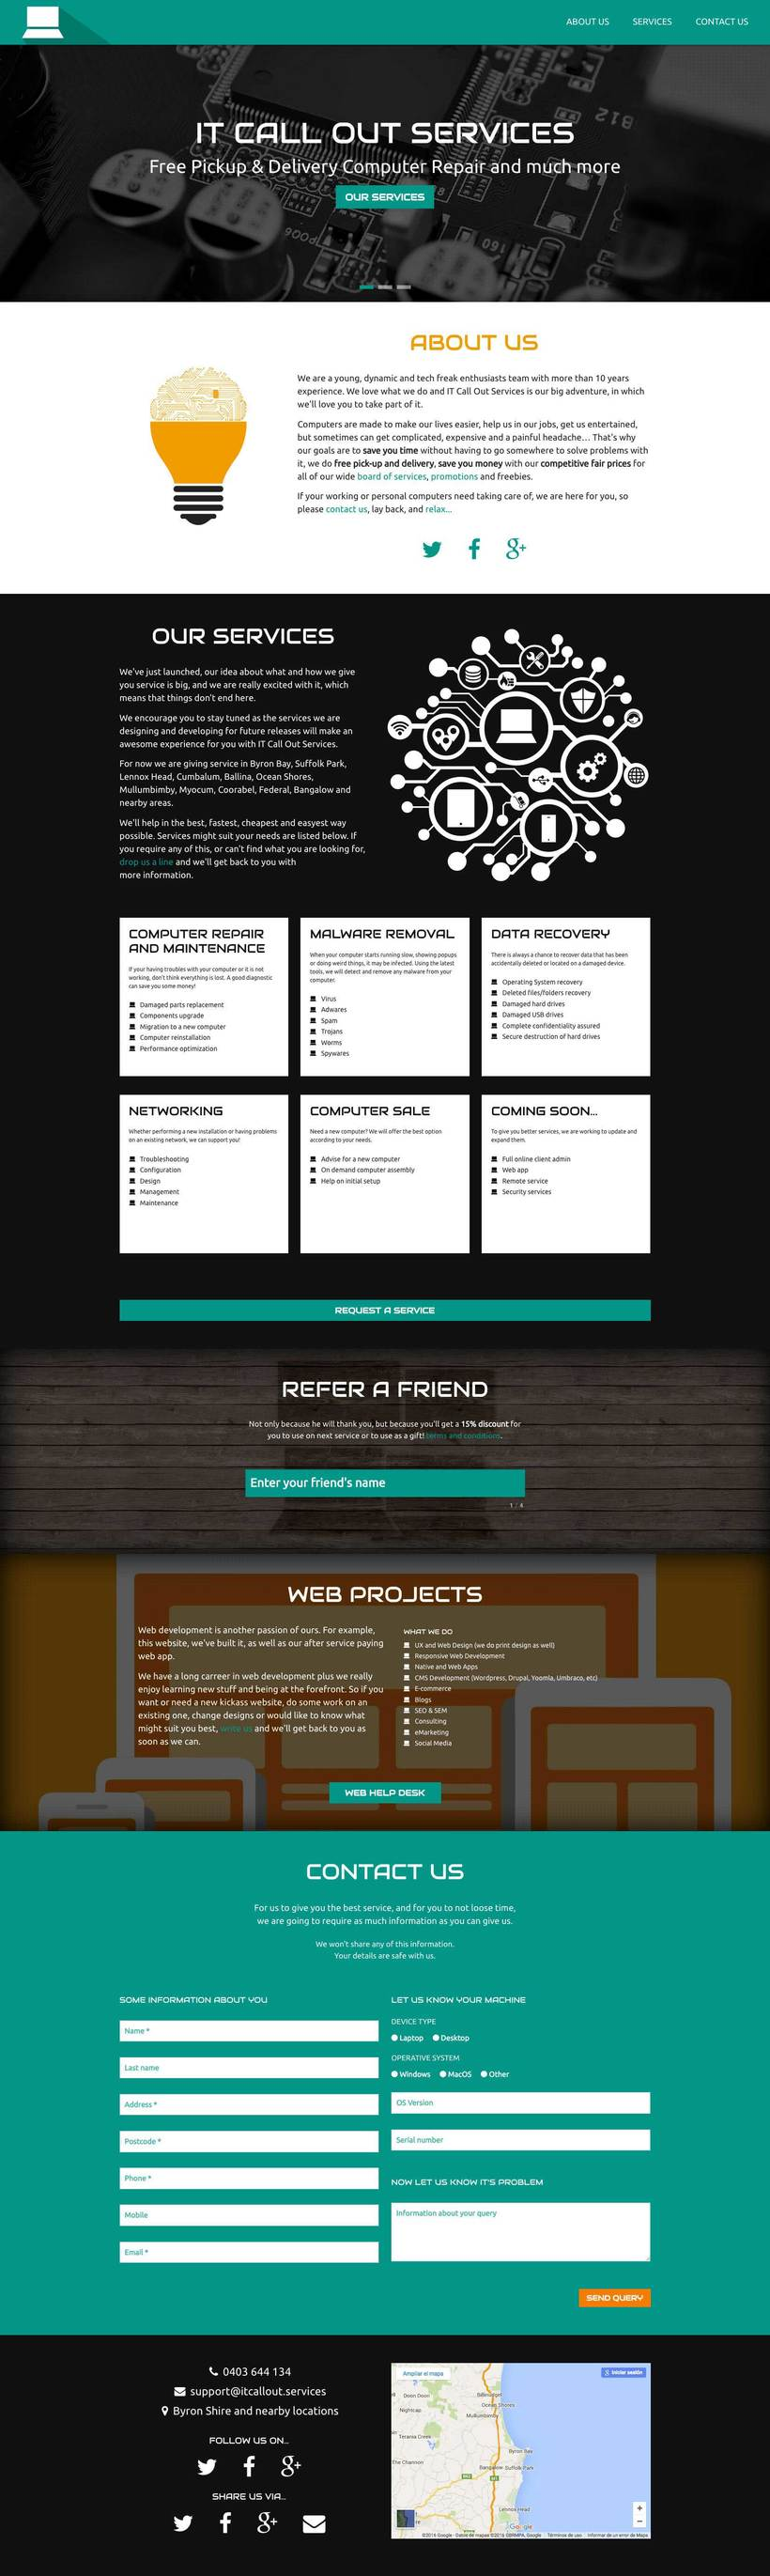 Nuevo proyectoIT Callout Services -1